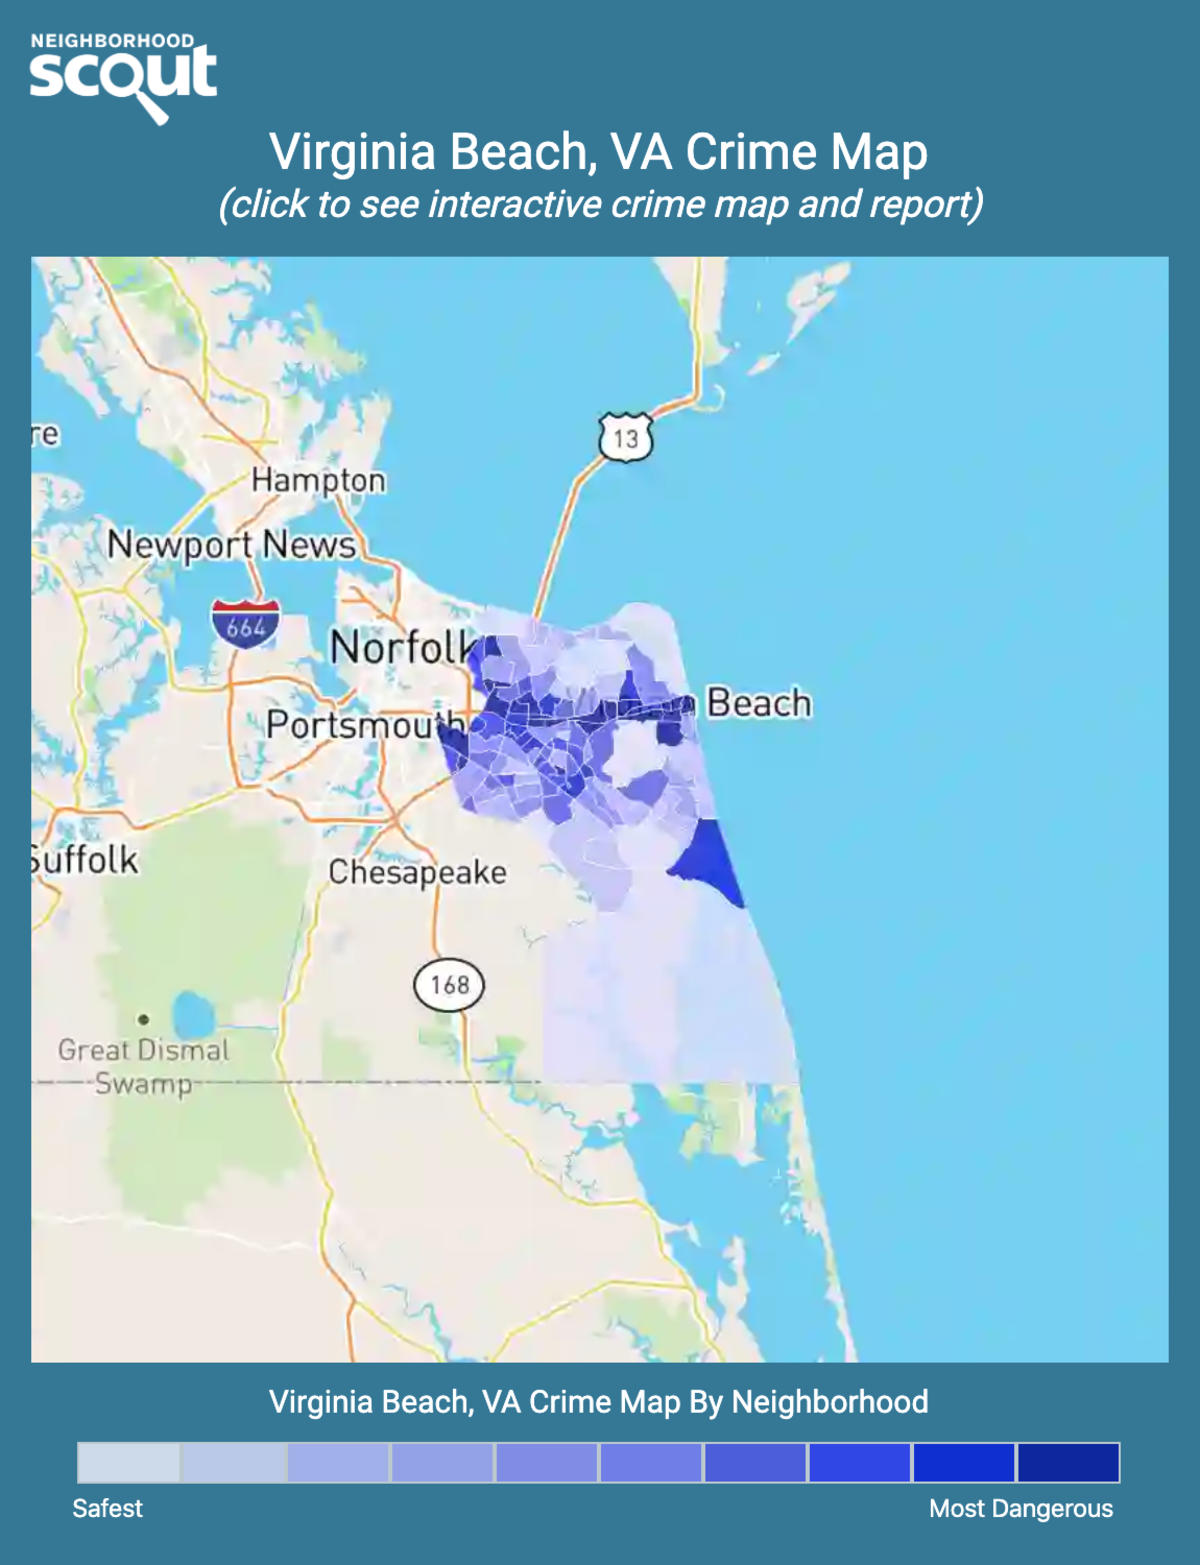 Virginia Beach, Virginia crime map